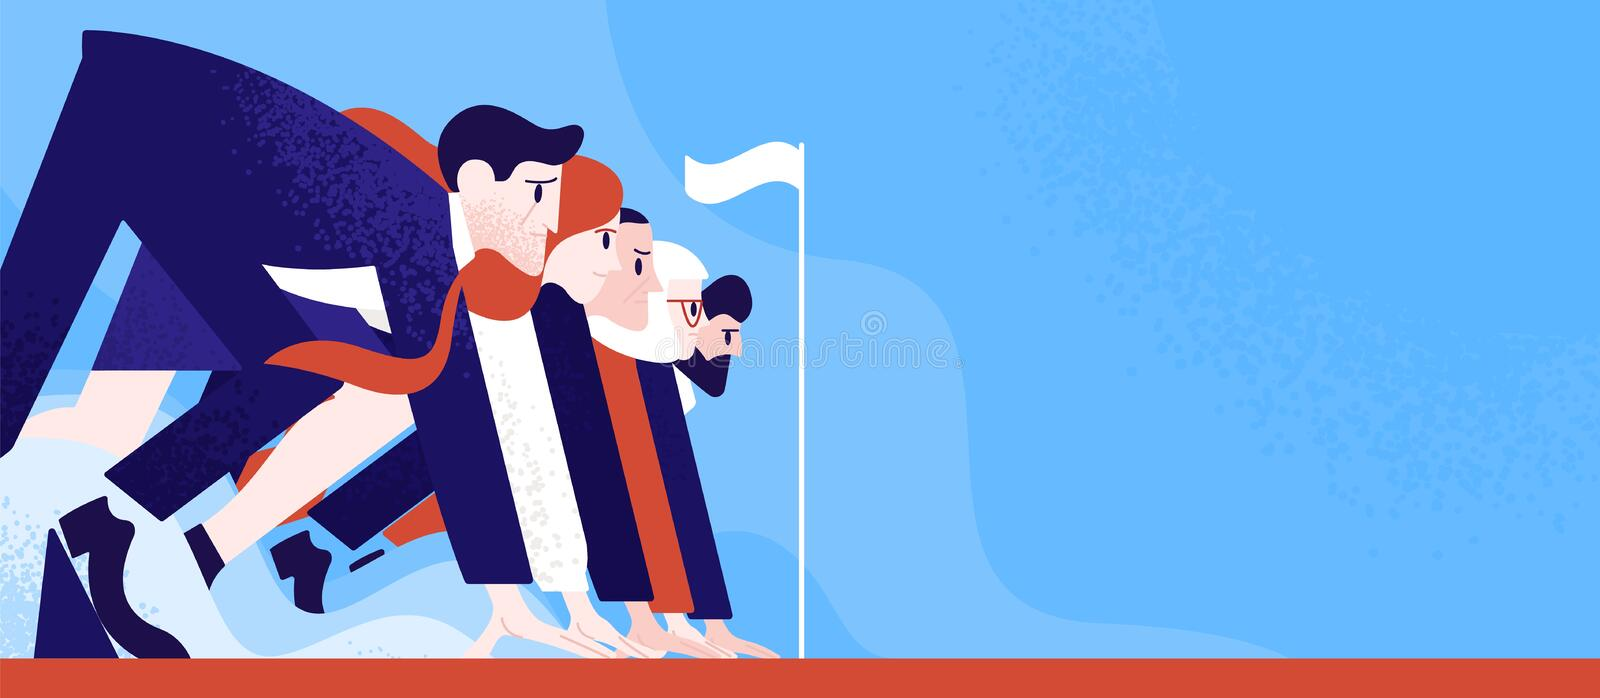 Office workers or clerks standing ready on start line before race or sprint. Business competition or rivalry between. Employees or colleagues. Colorful vector stock illustration